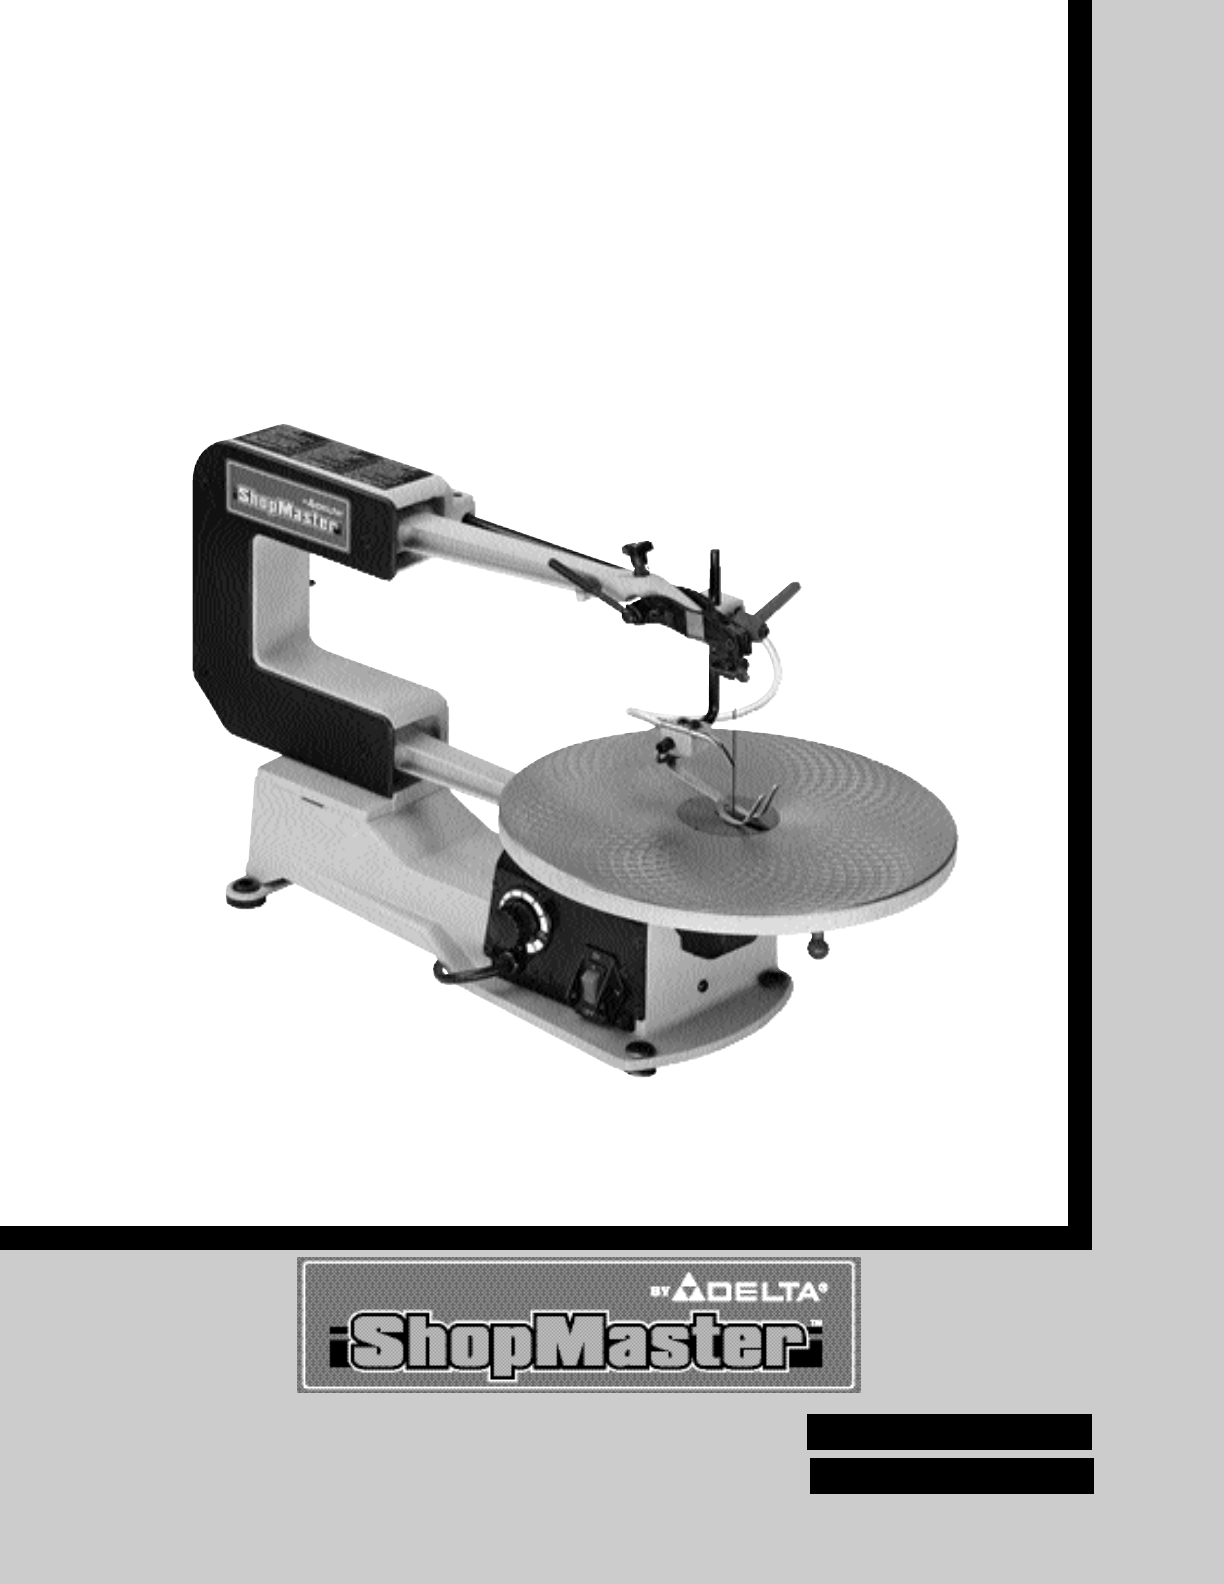 Delta cordless saw sm600 user guide manualsonline greentooth Image collections